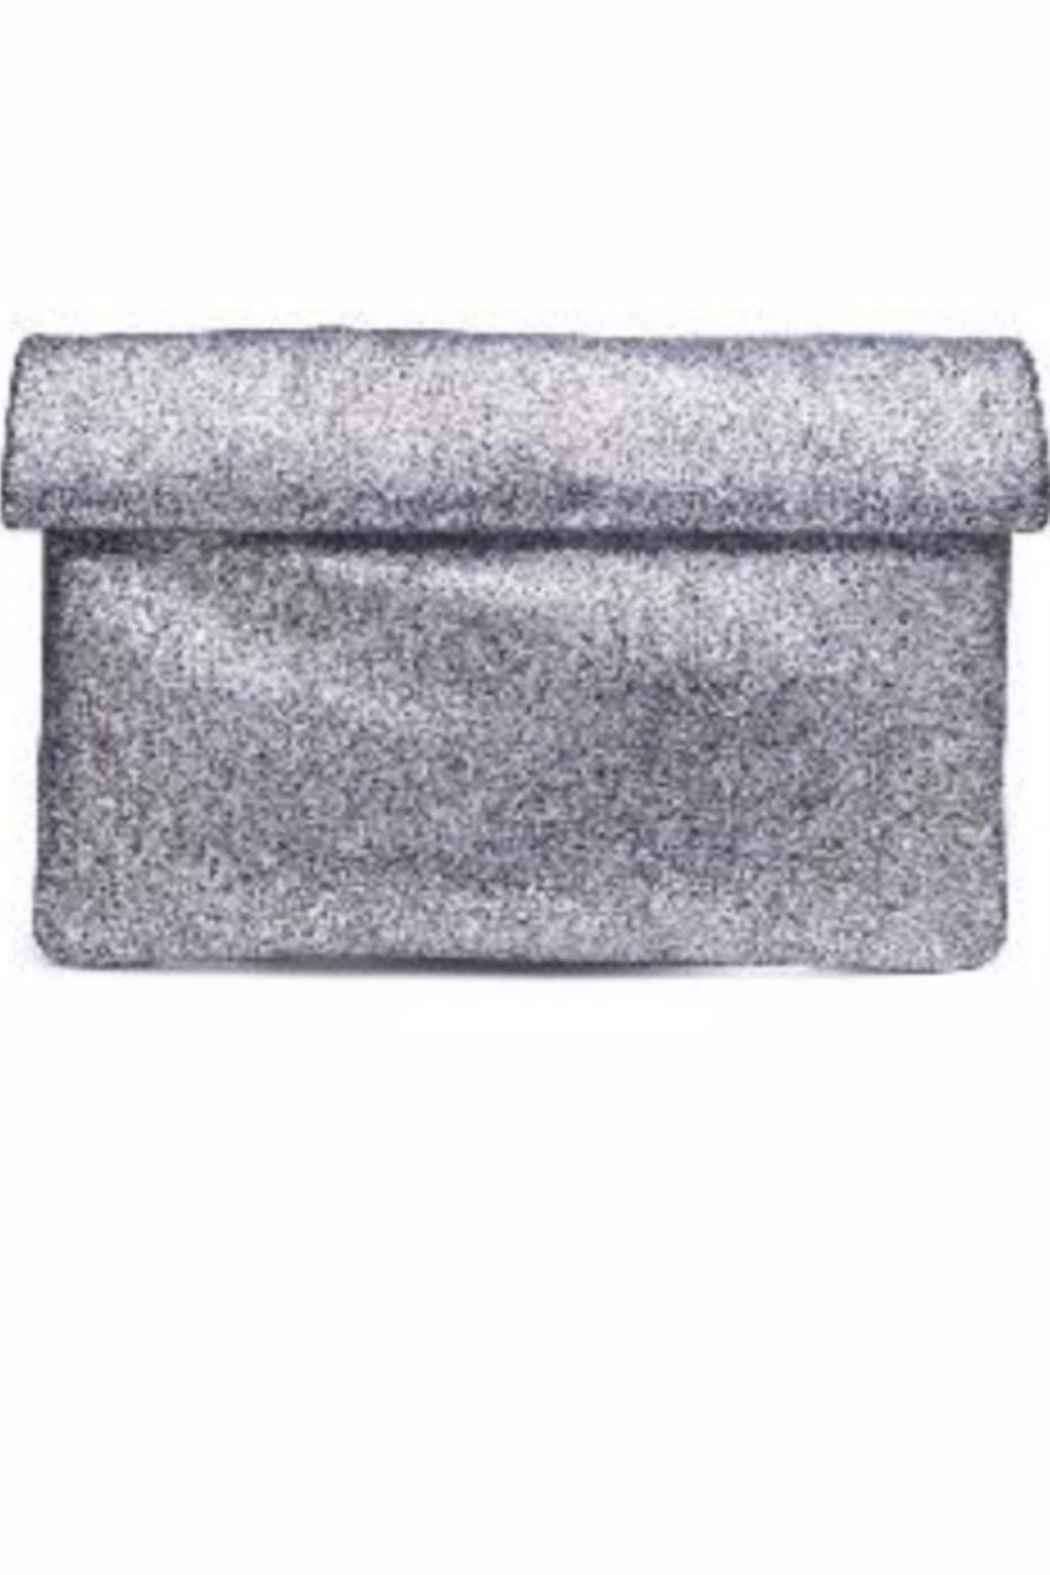 Allie & Chica Pewter Metallic Clutch - Main Image